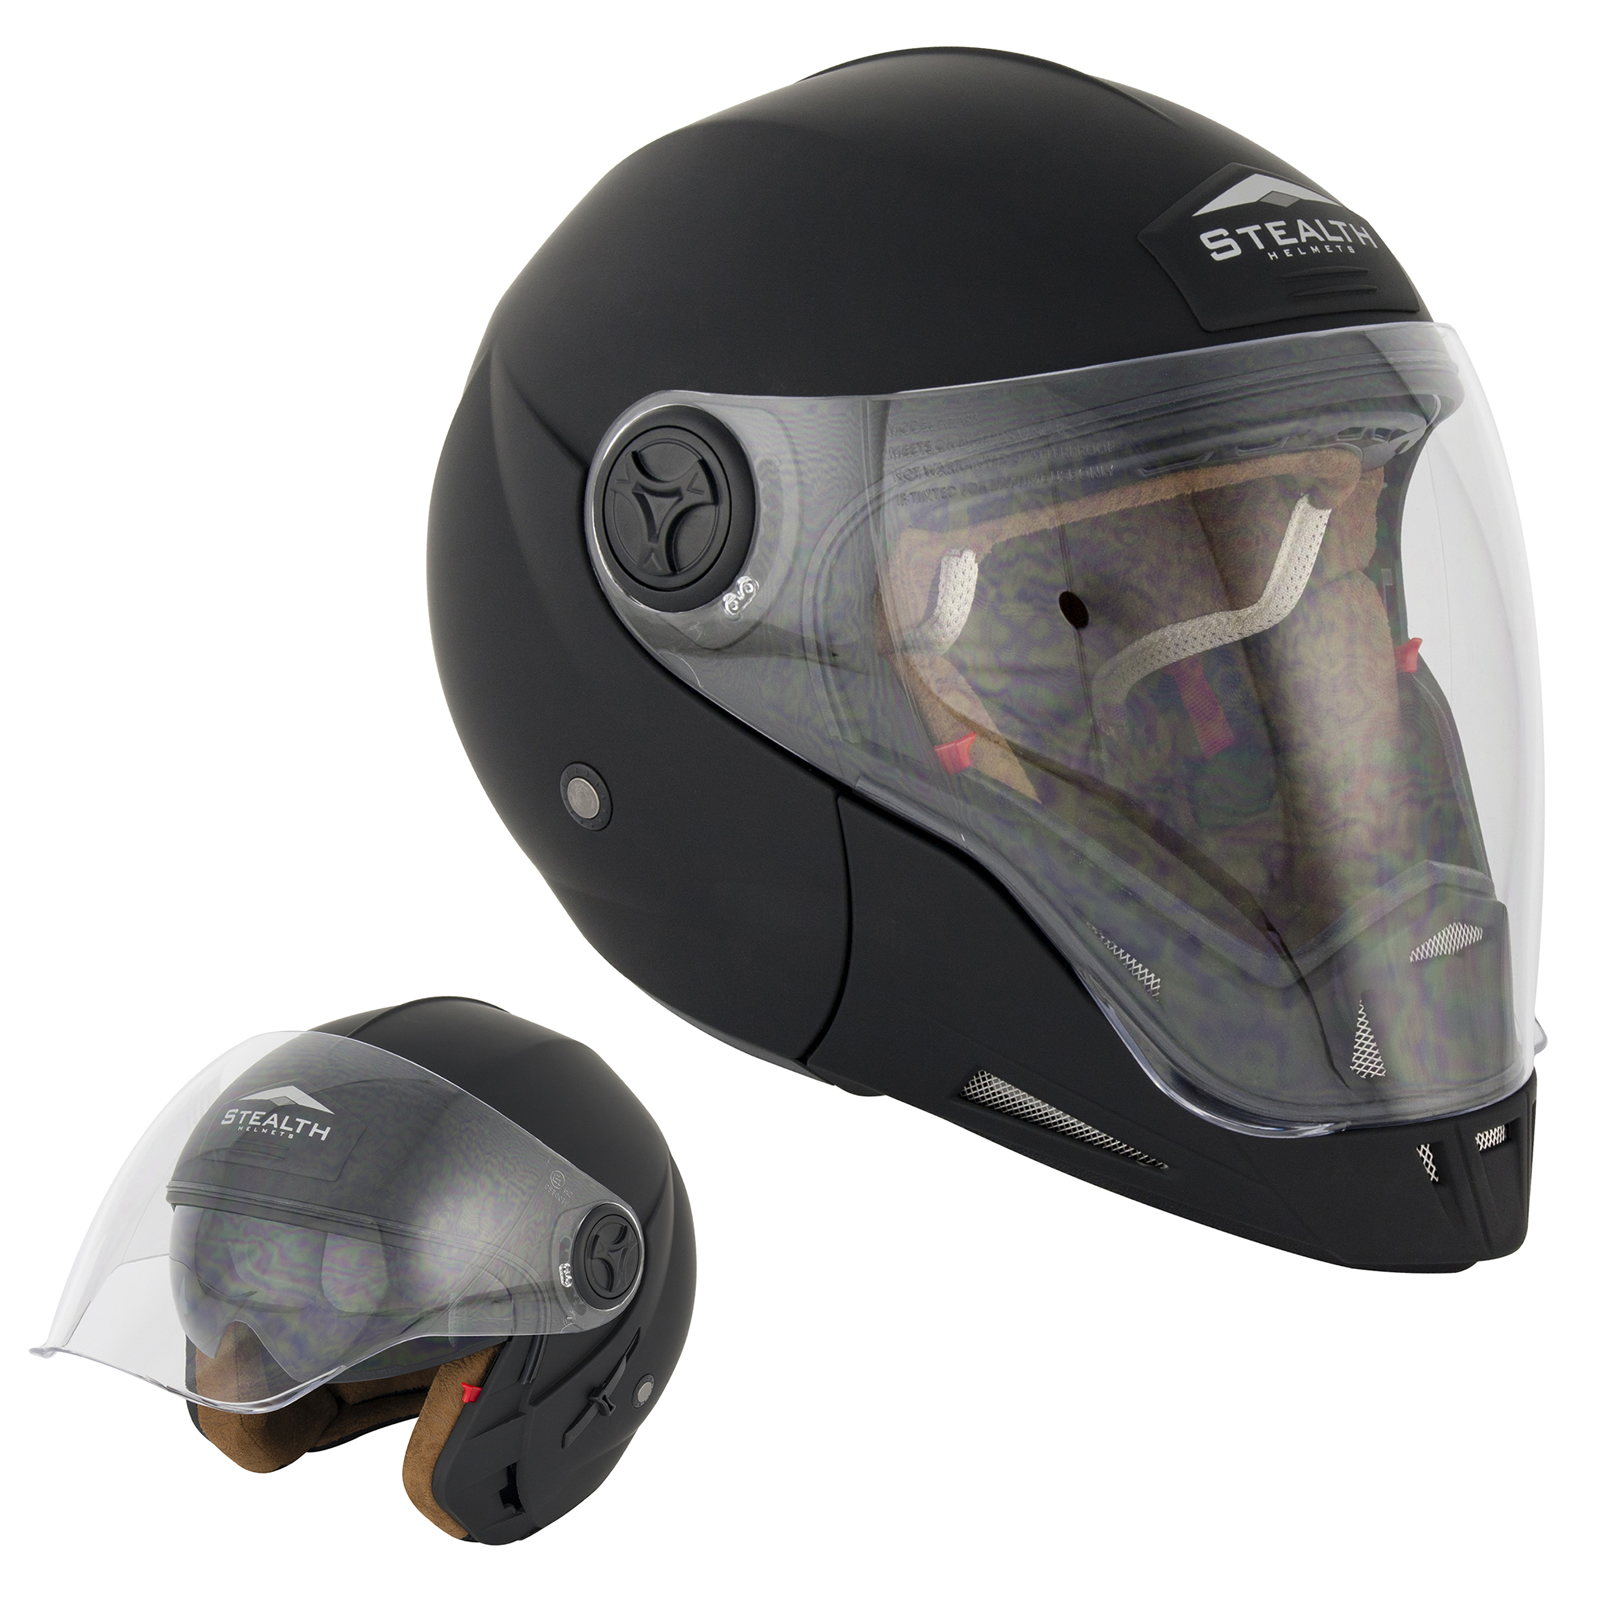 stealth hd190 transformer moto scooter jet int gral motard pare soleil casque ebay. Black Bedroom Furniture Sets. Home Design Ideas